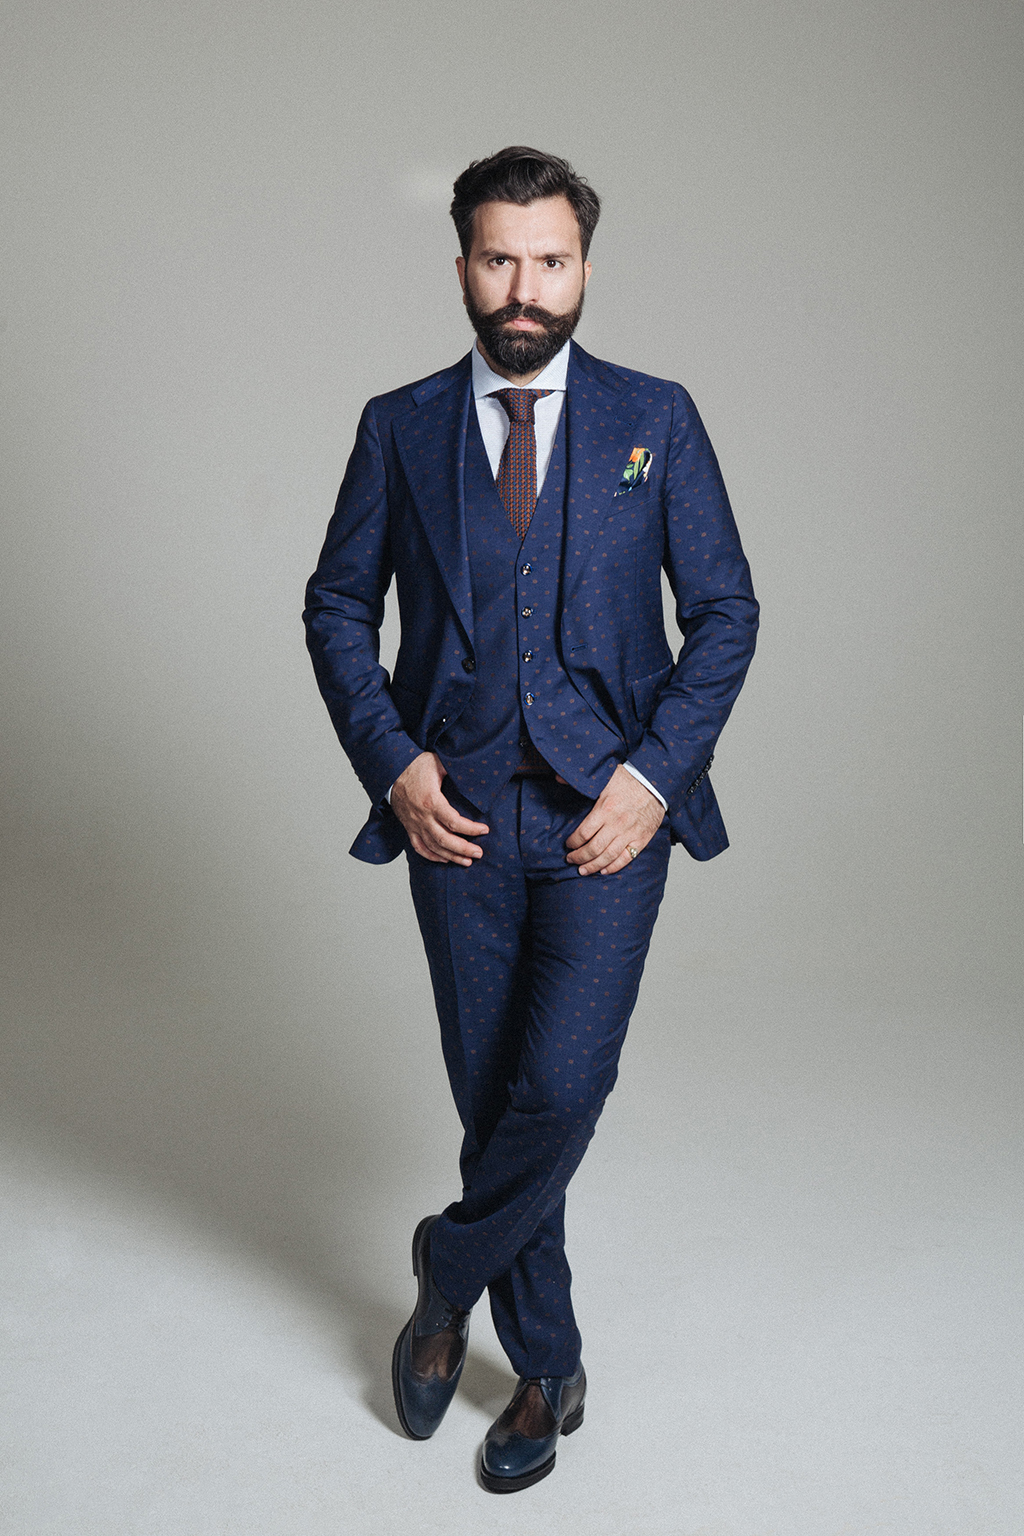 tailor_patterned_suit_blue-7